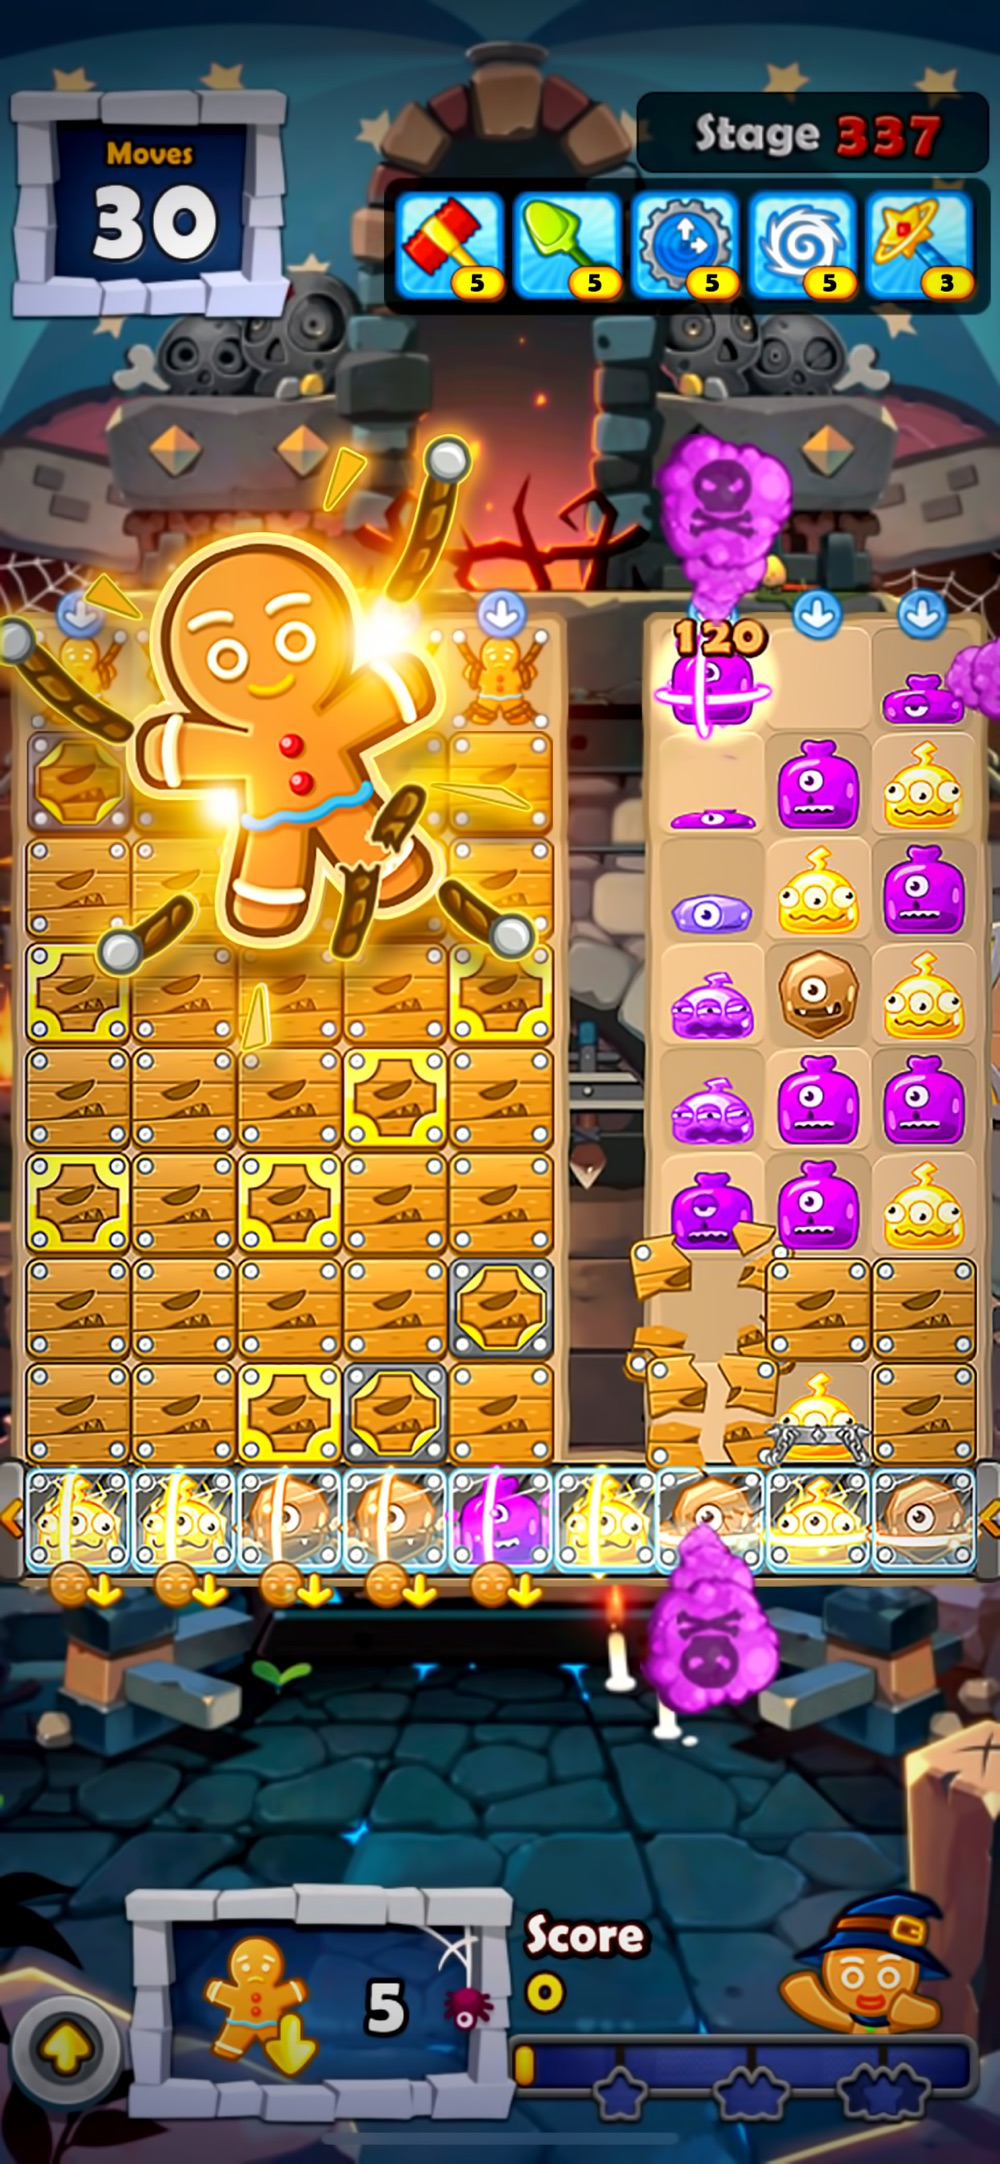 Monster Busters:Match 3 Puzzle hack tool